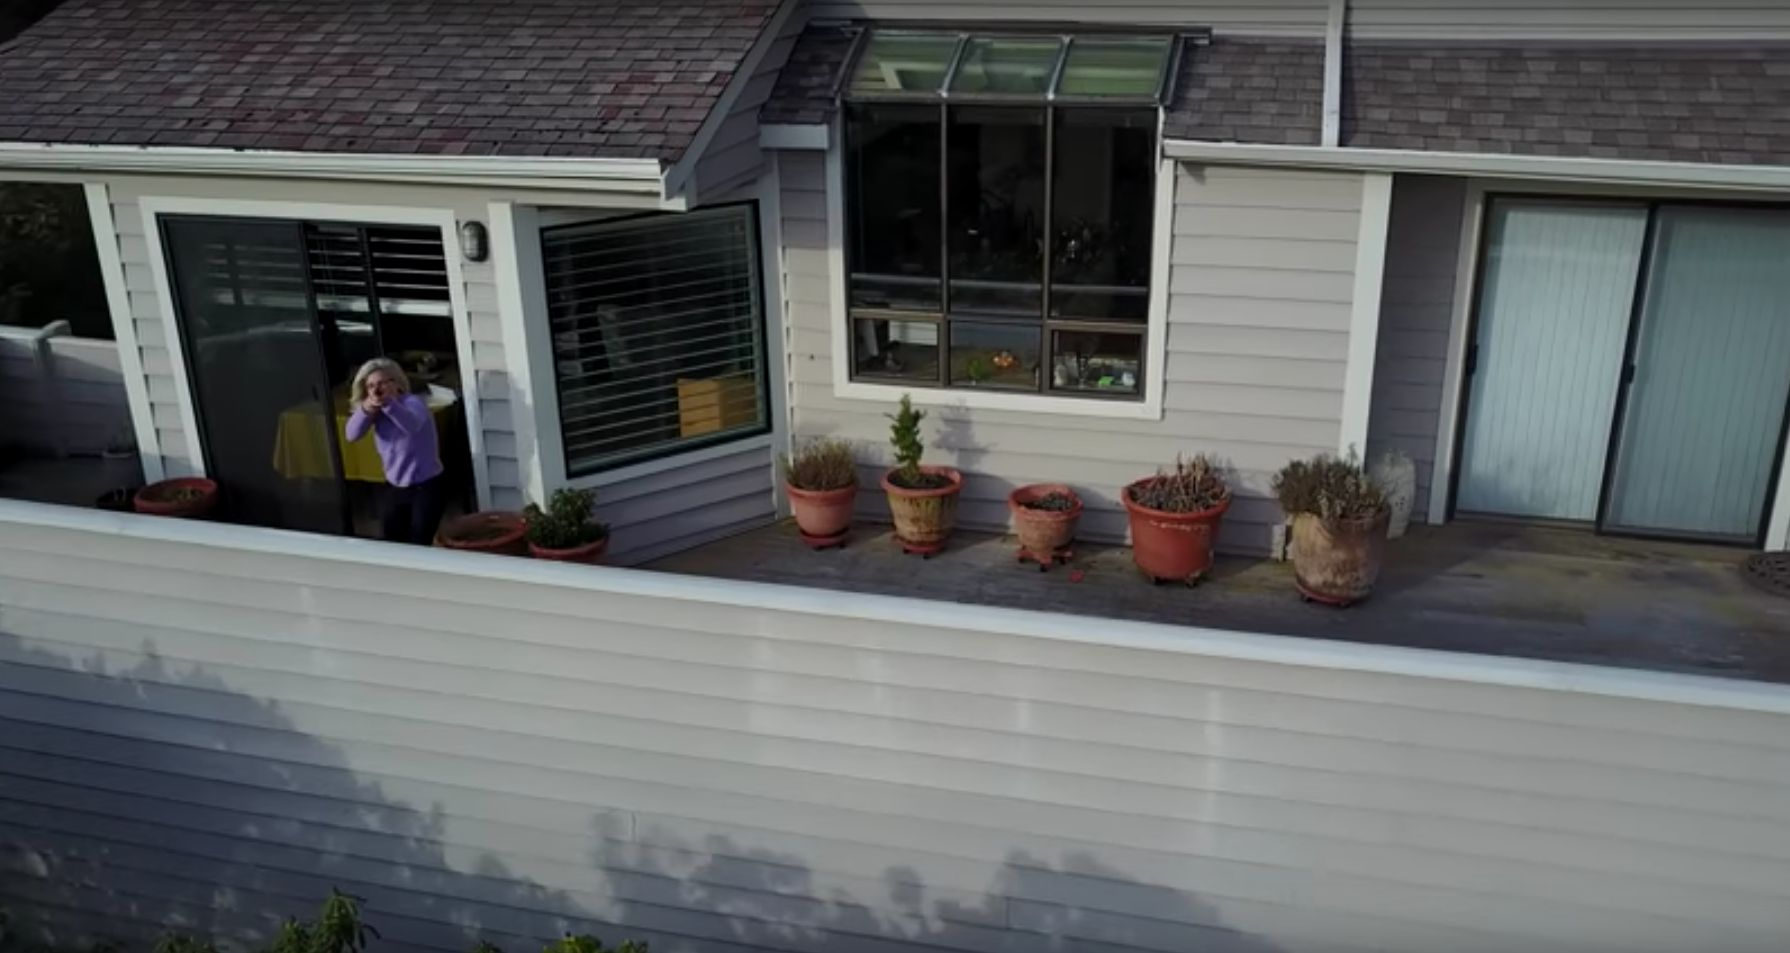 Video taken by a drone last week appears to show a woman attempting to shoot it down after it started filming her home.